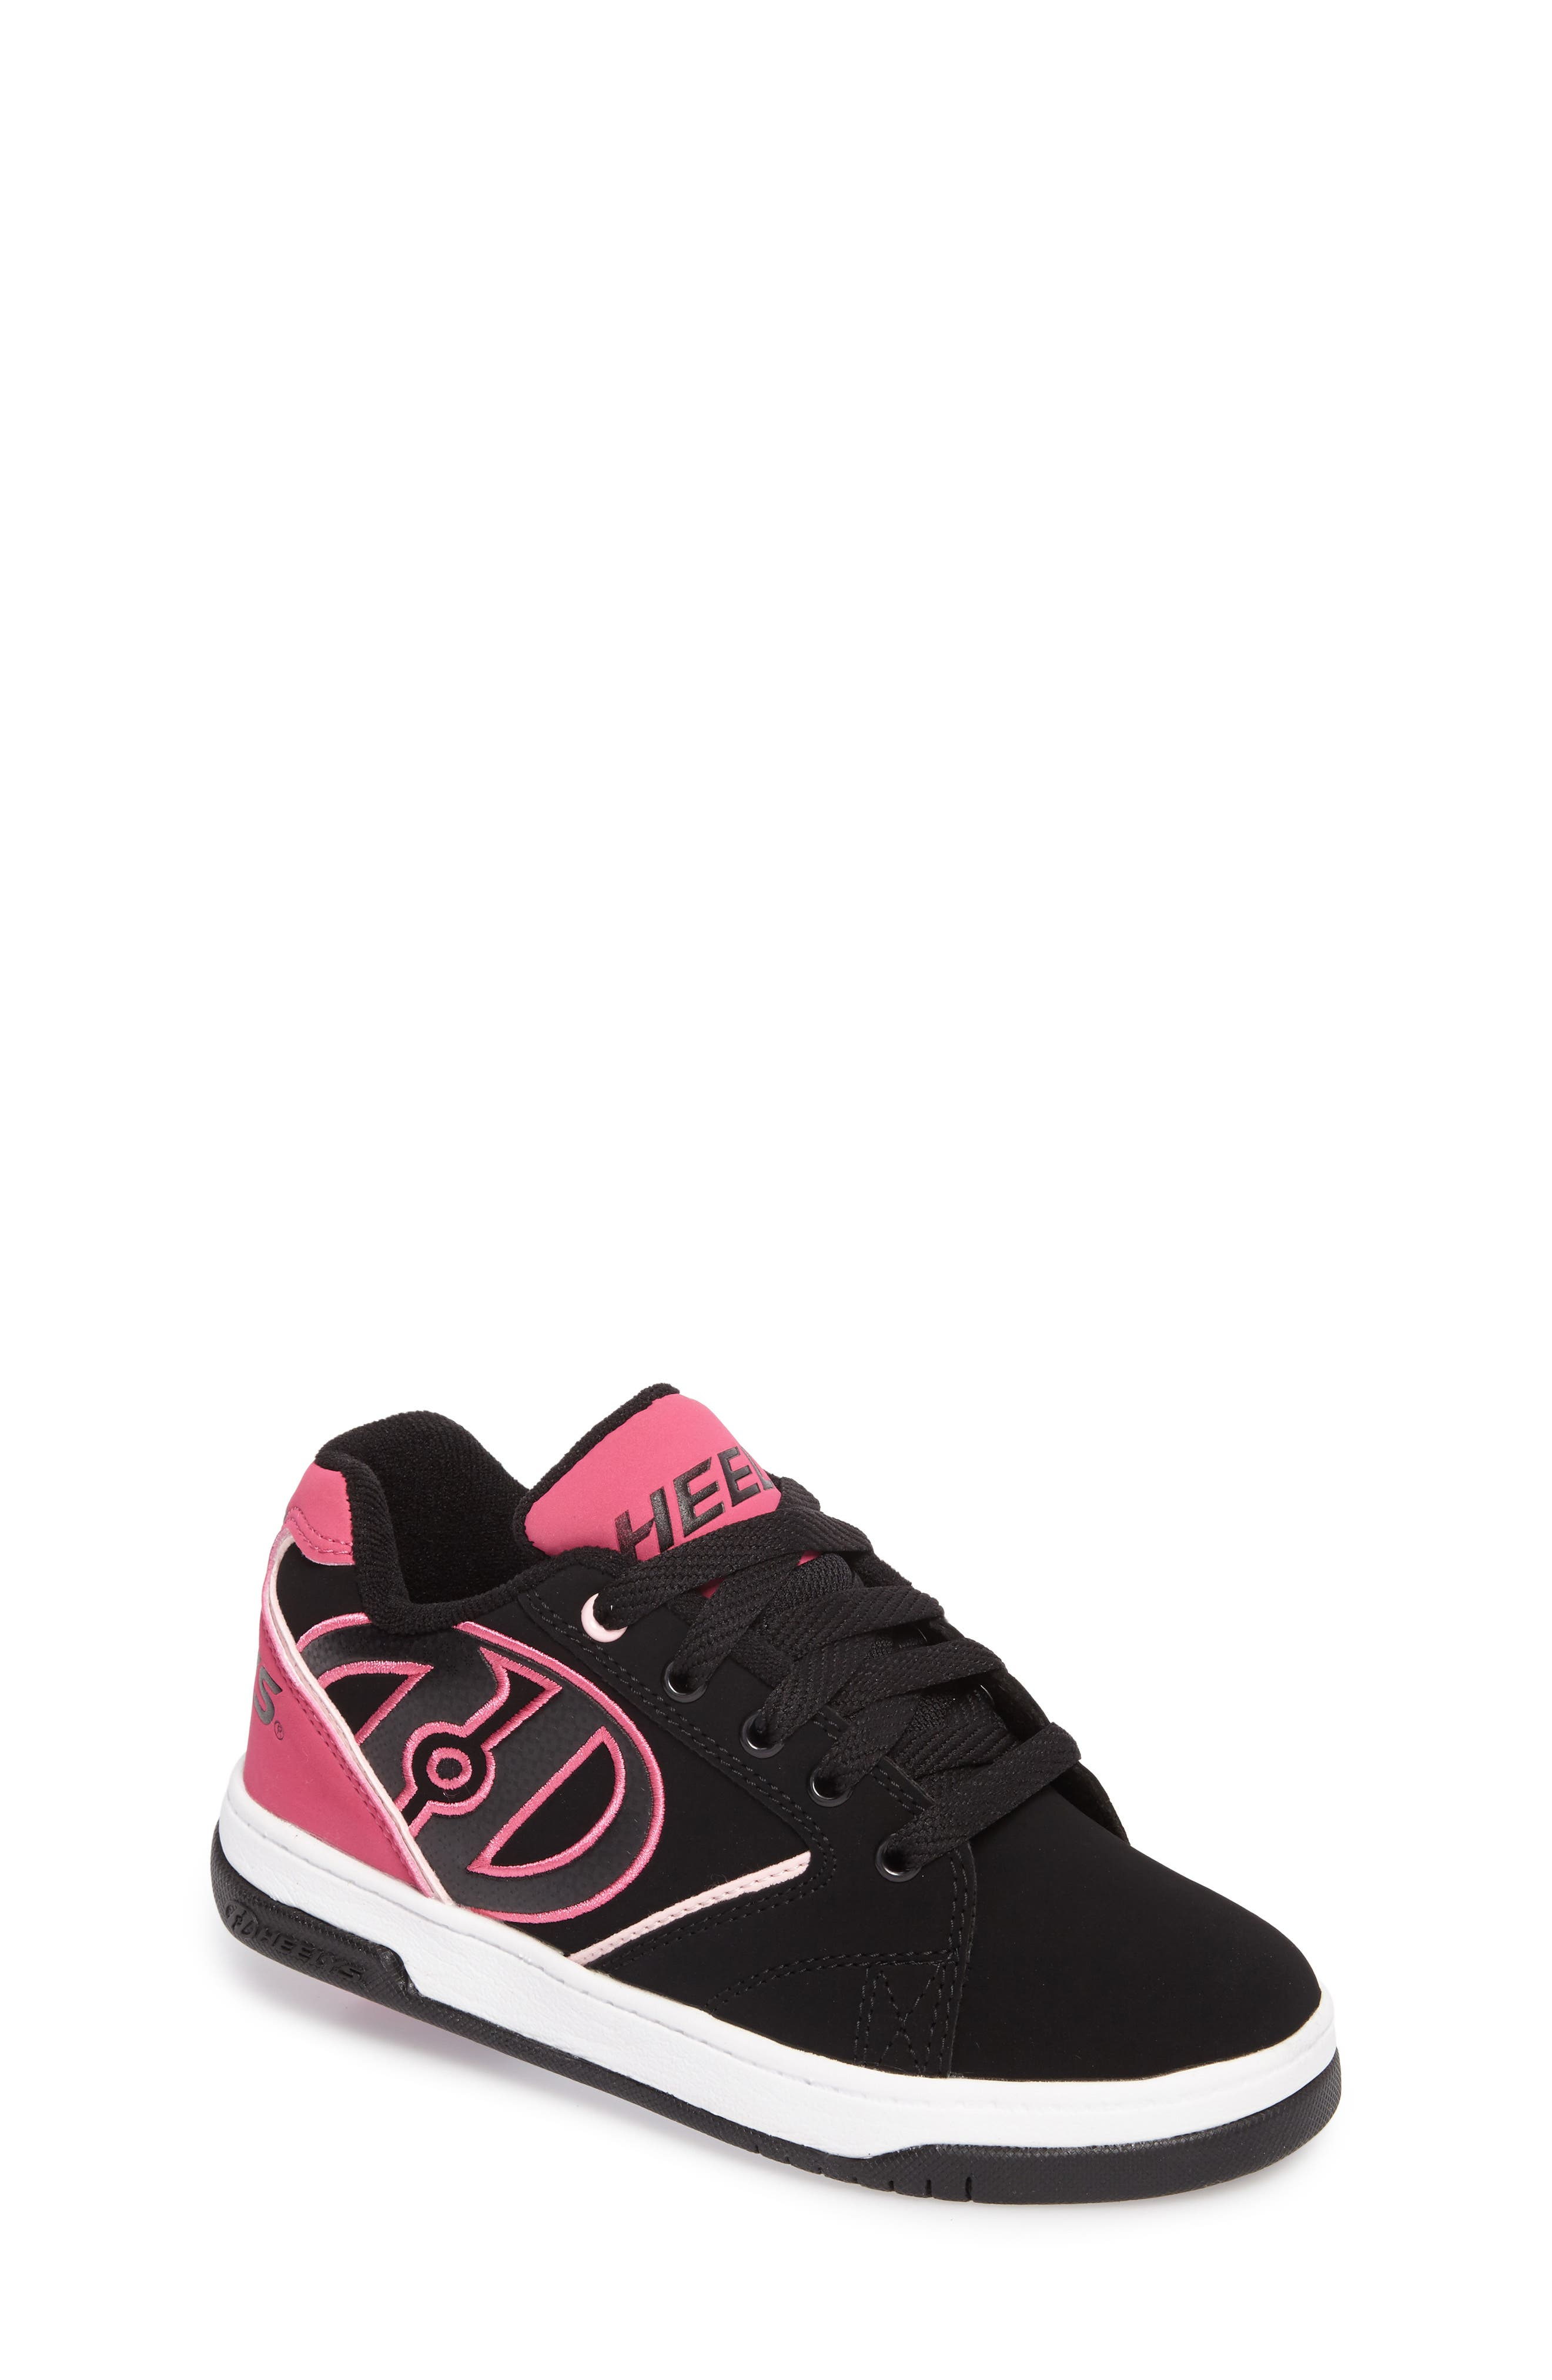 Propel 2.0 Sneaker,                         Main,                         color, BLACK/ PINK/ WHITE